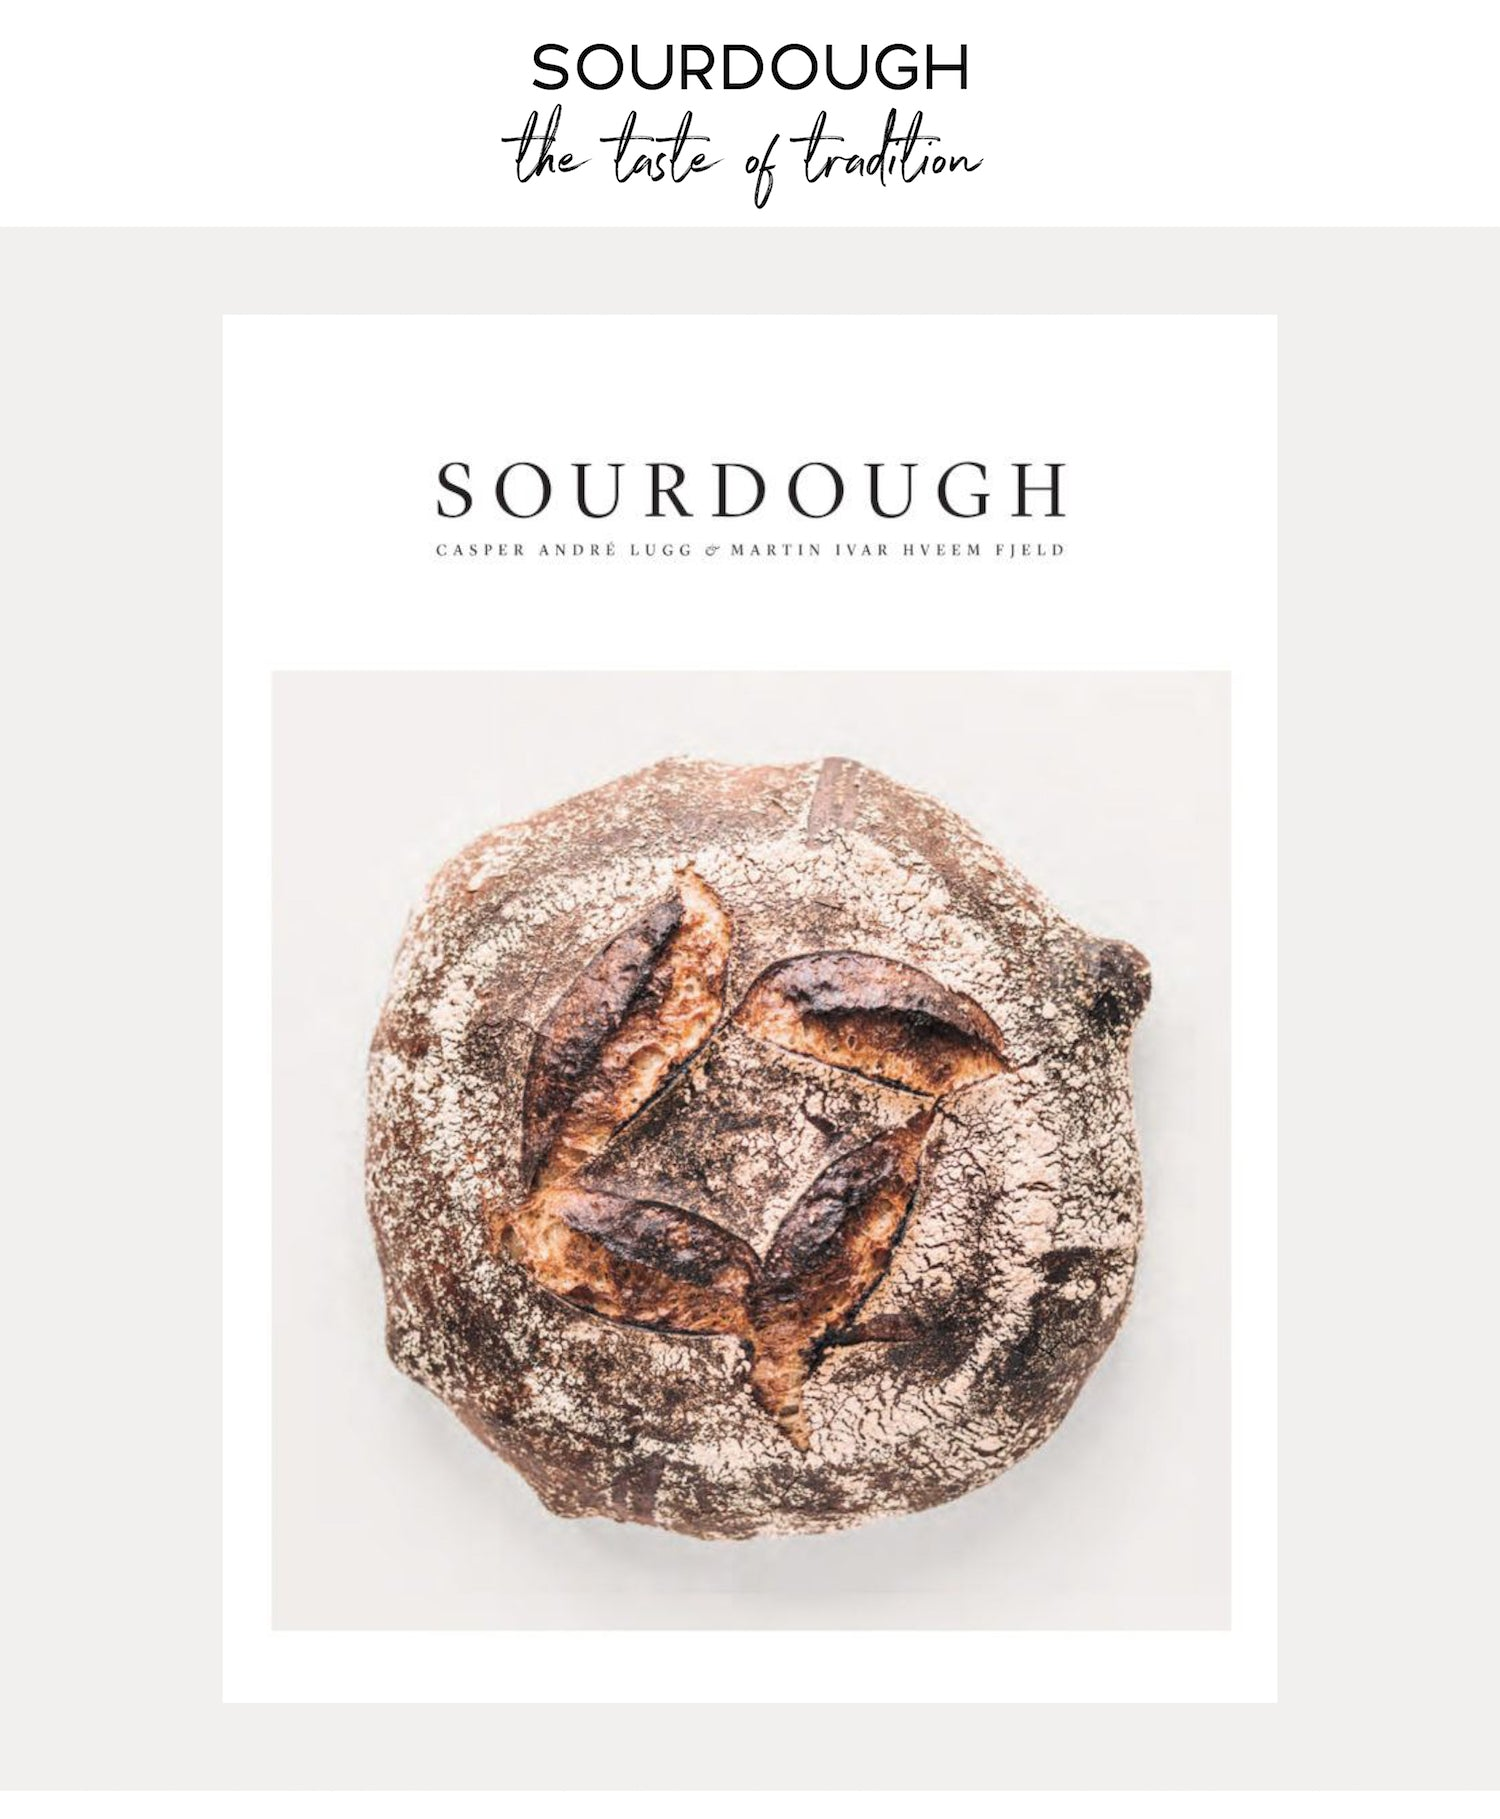 Paper Plane Store - Sourdough Cookbook